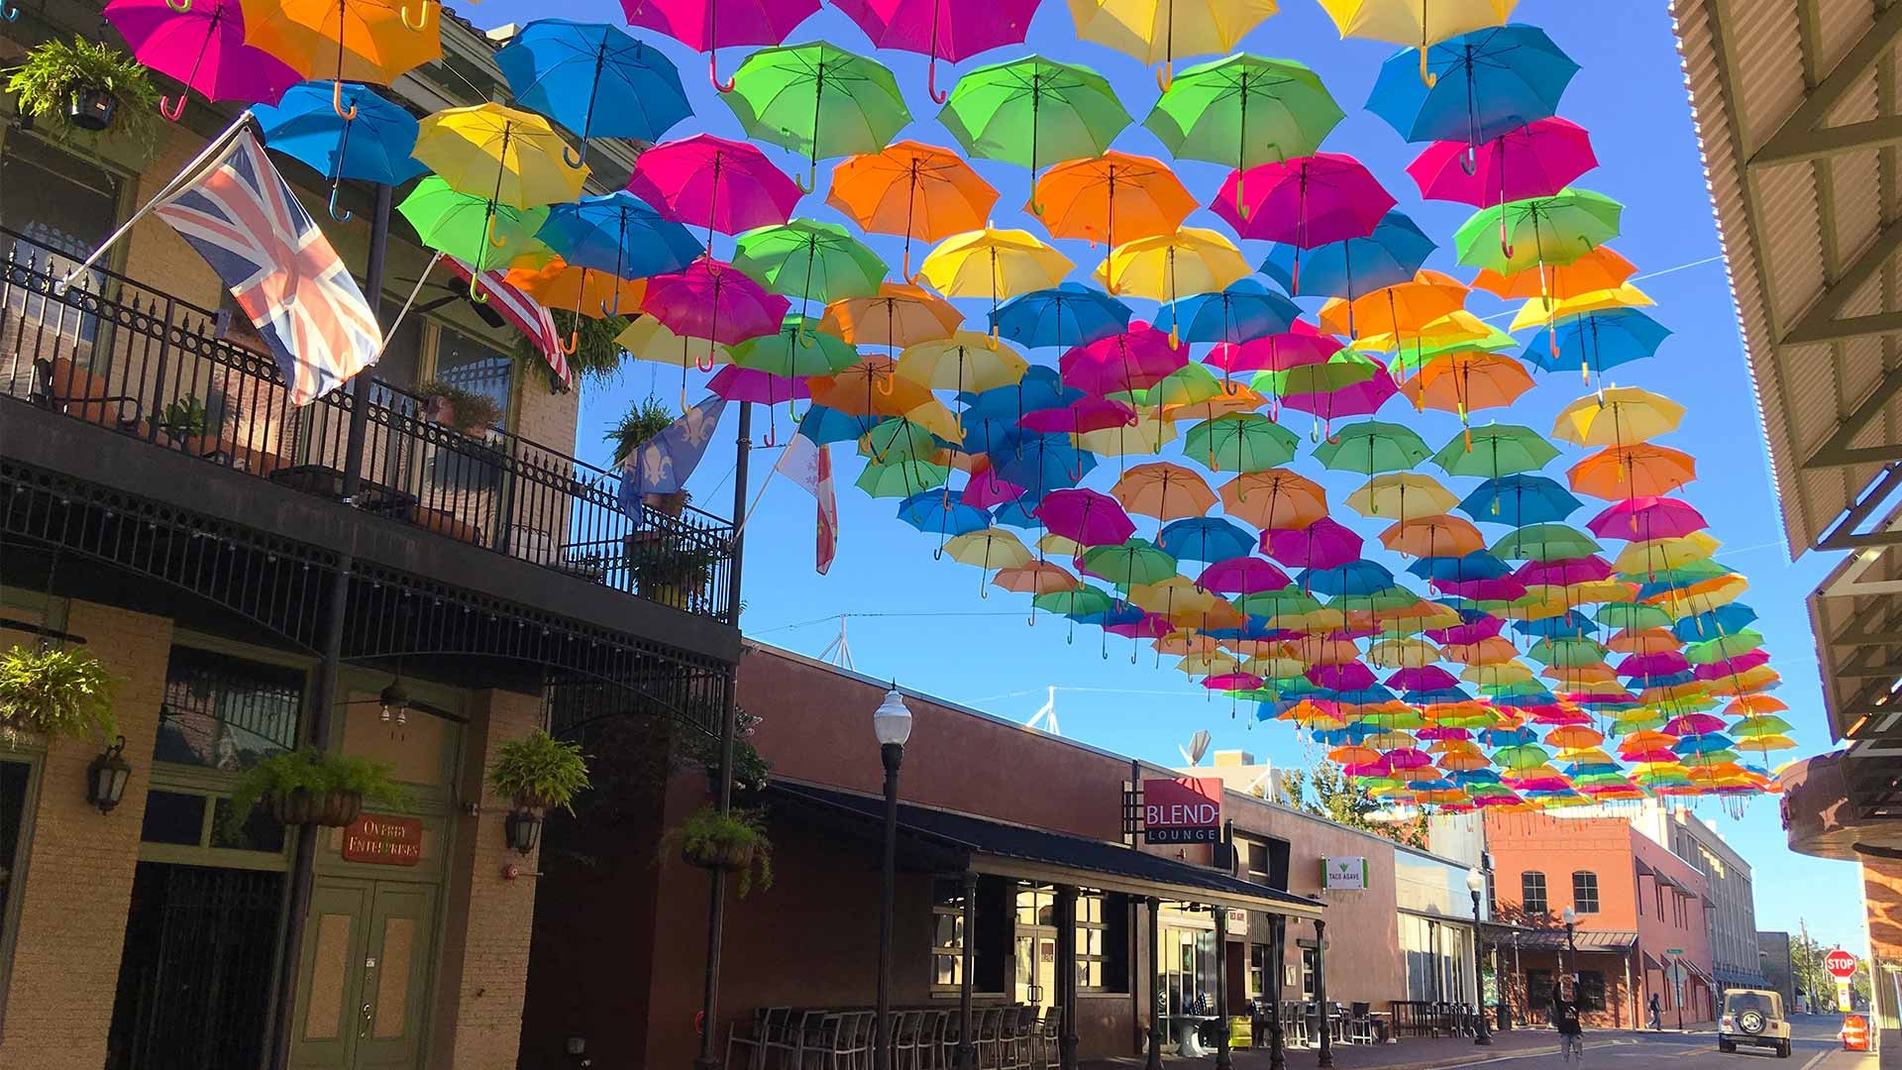 Umbrella Sky Project - Pensacola'17